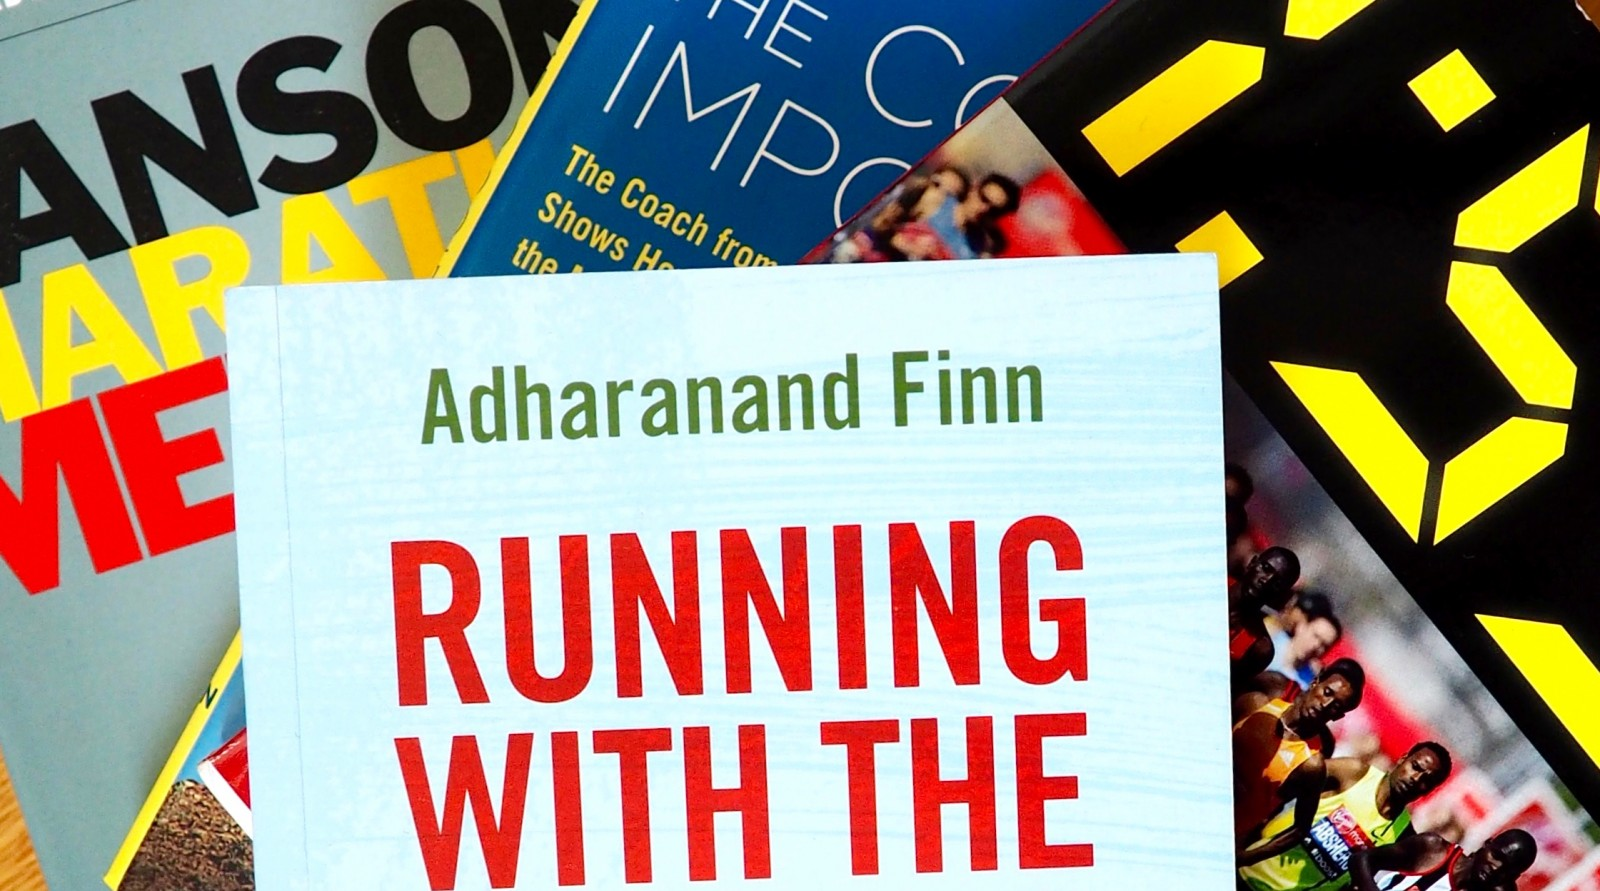 My Top 5 Running Reads